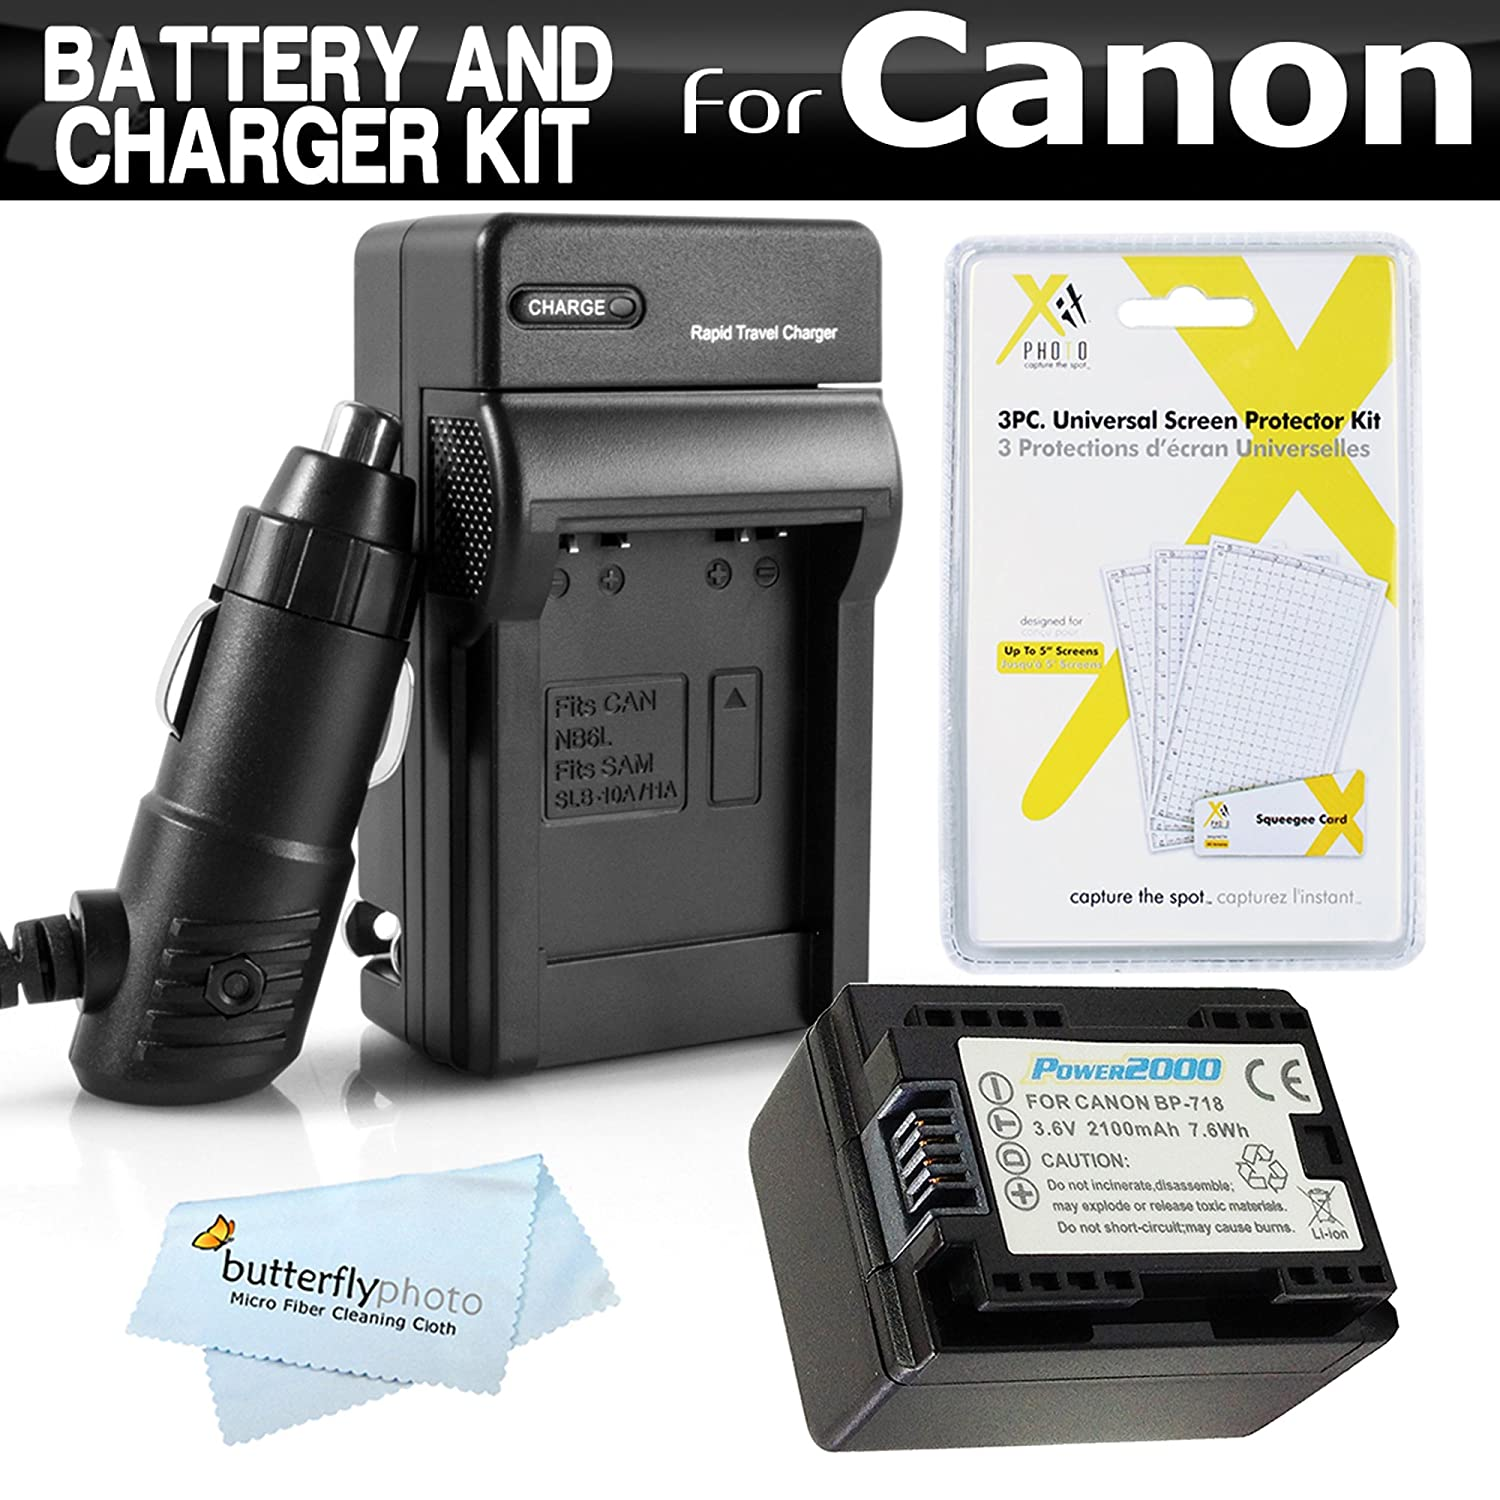 Amazon com battery and charger kit for canon vixia hf r82 hf r80 hf r800 hf r62 hf r60 hf r600 hf r700 hf r72 hf r70 camcorder includes